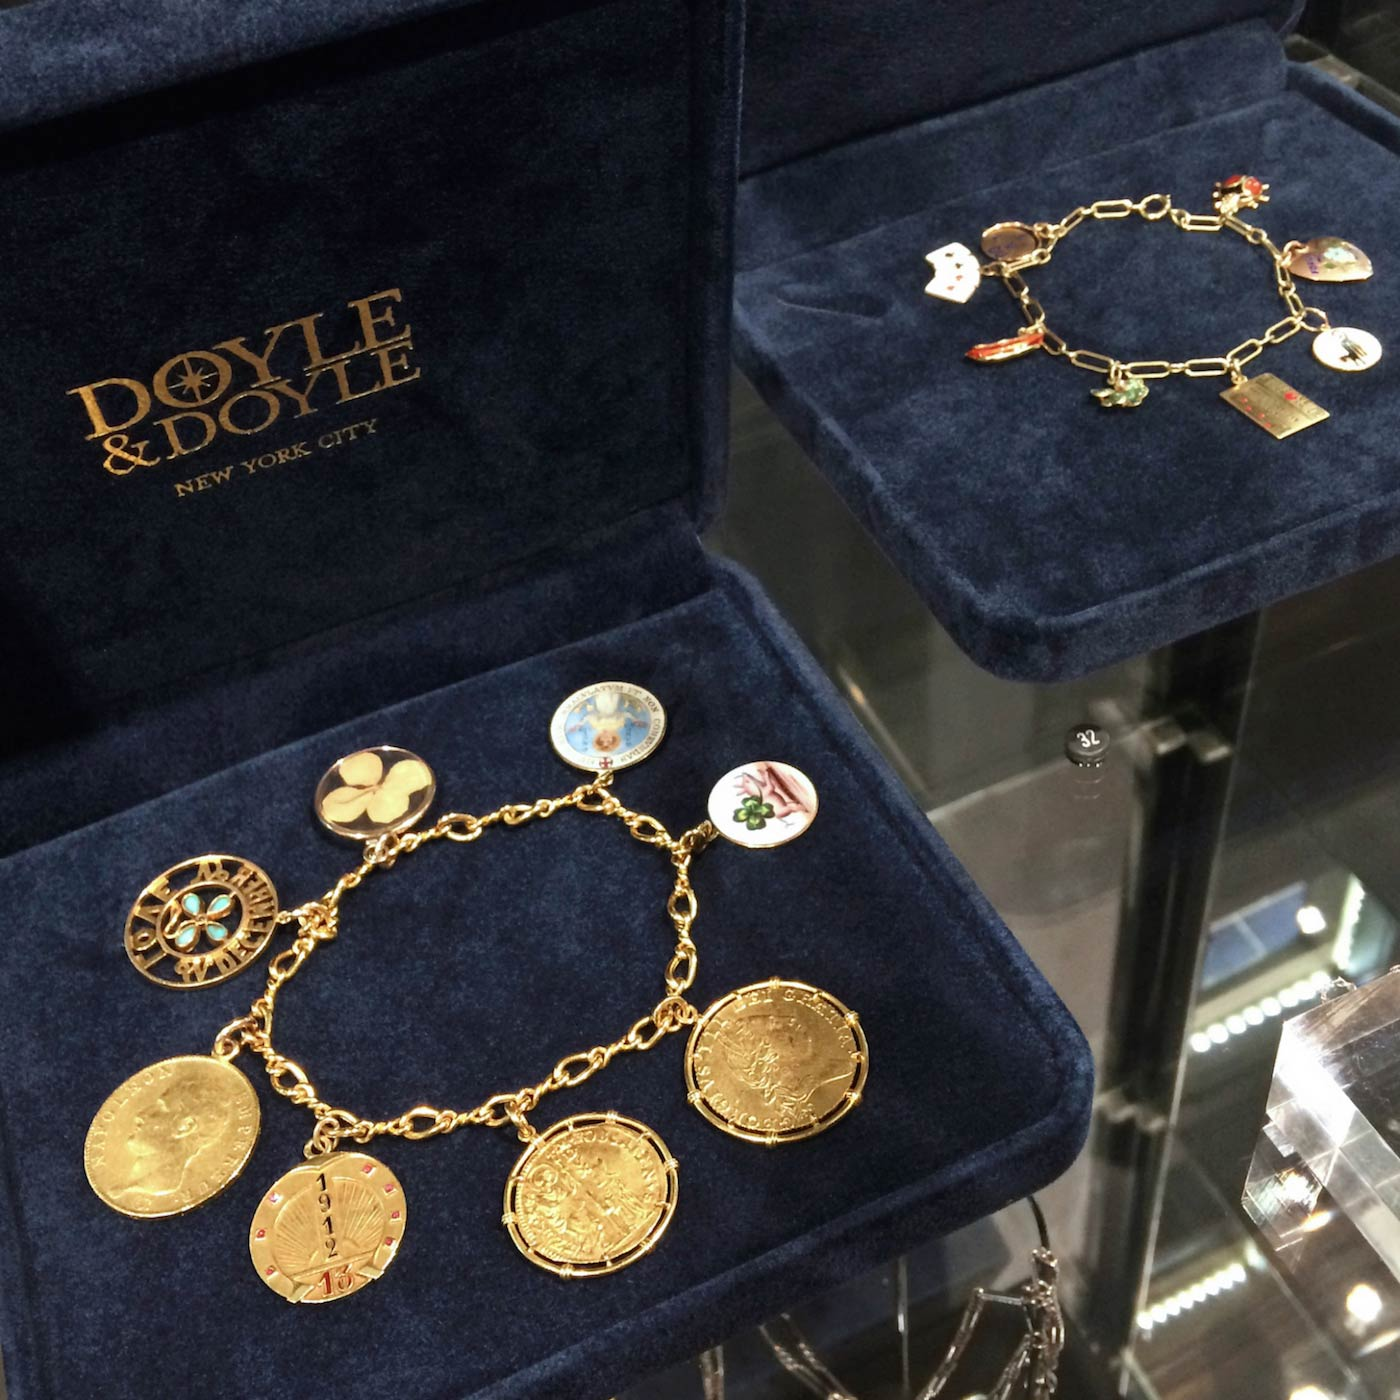 doyle and doyle vintage gold charm bracelets